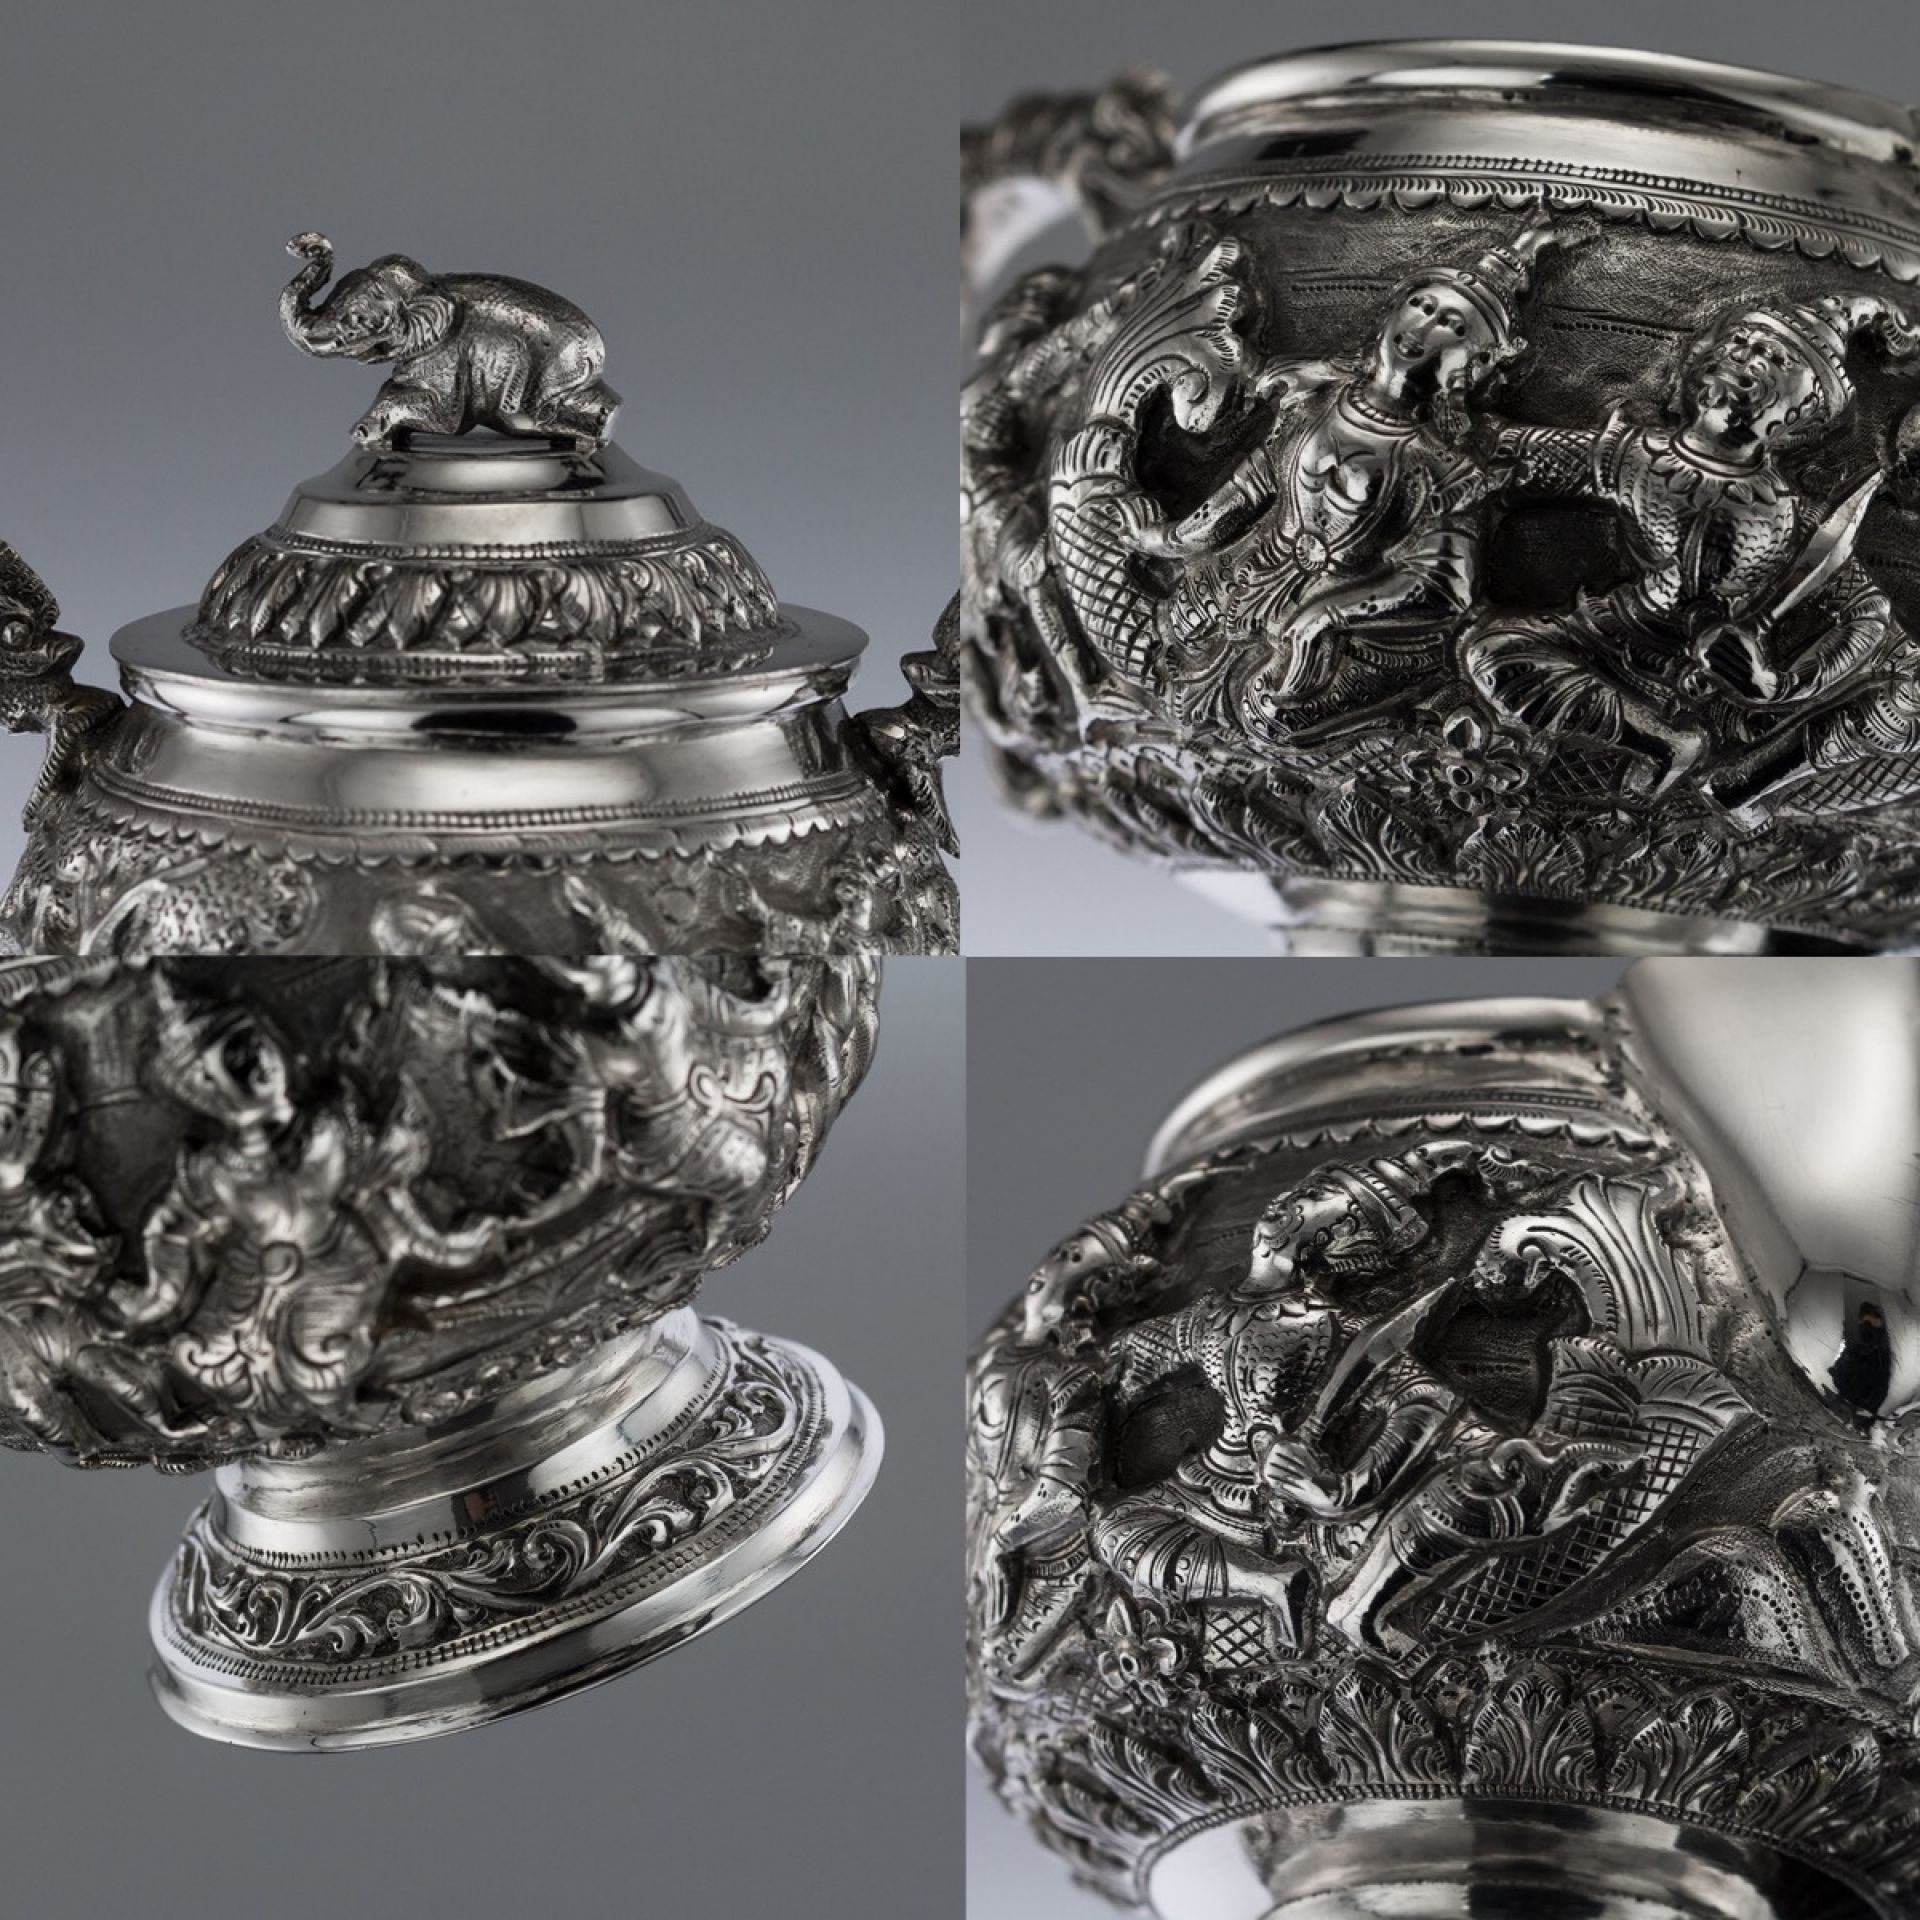 ANTIQUE 20thC BURMESE SOLID SILVER TEA & COFFEE SET ON TRAY c.1920